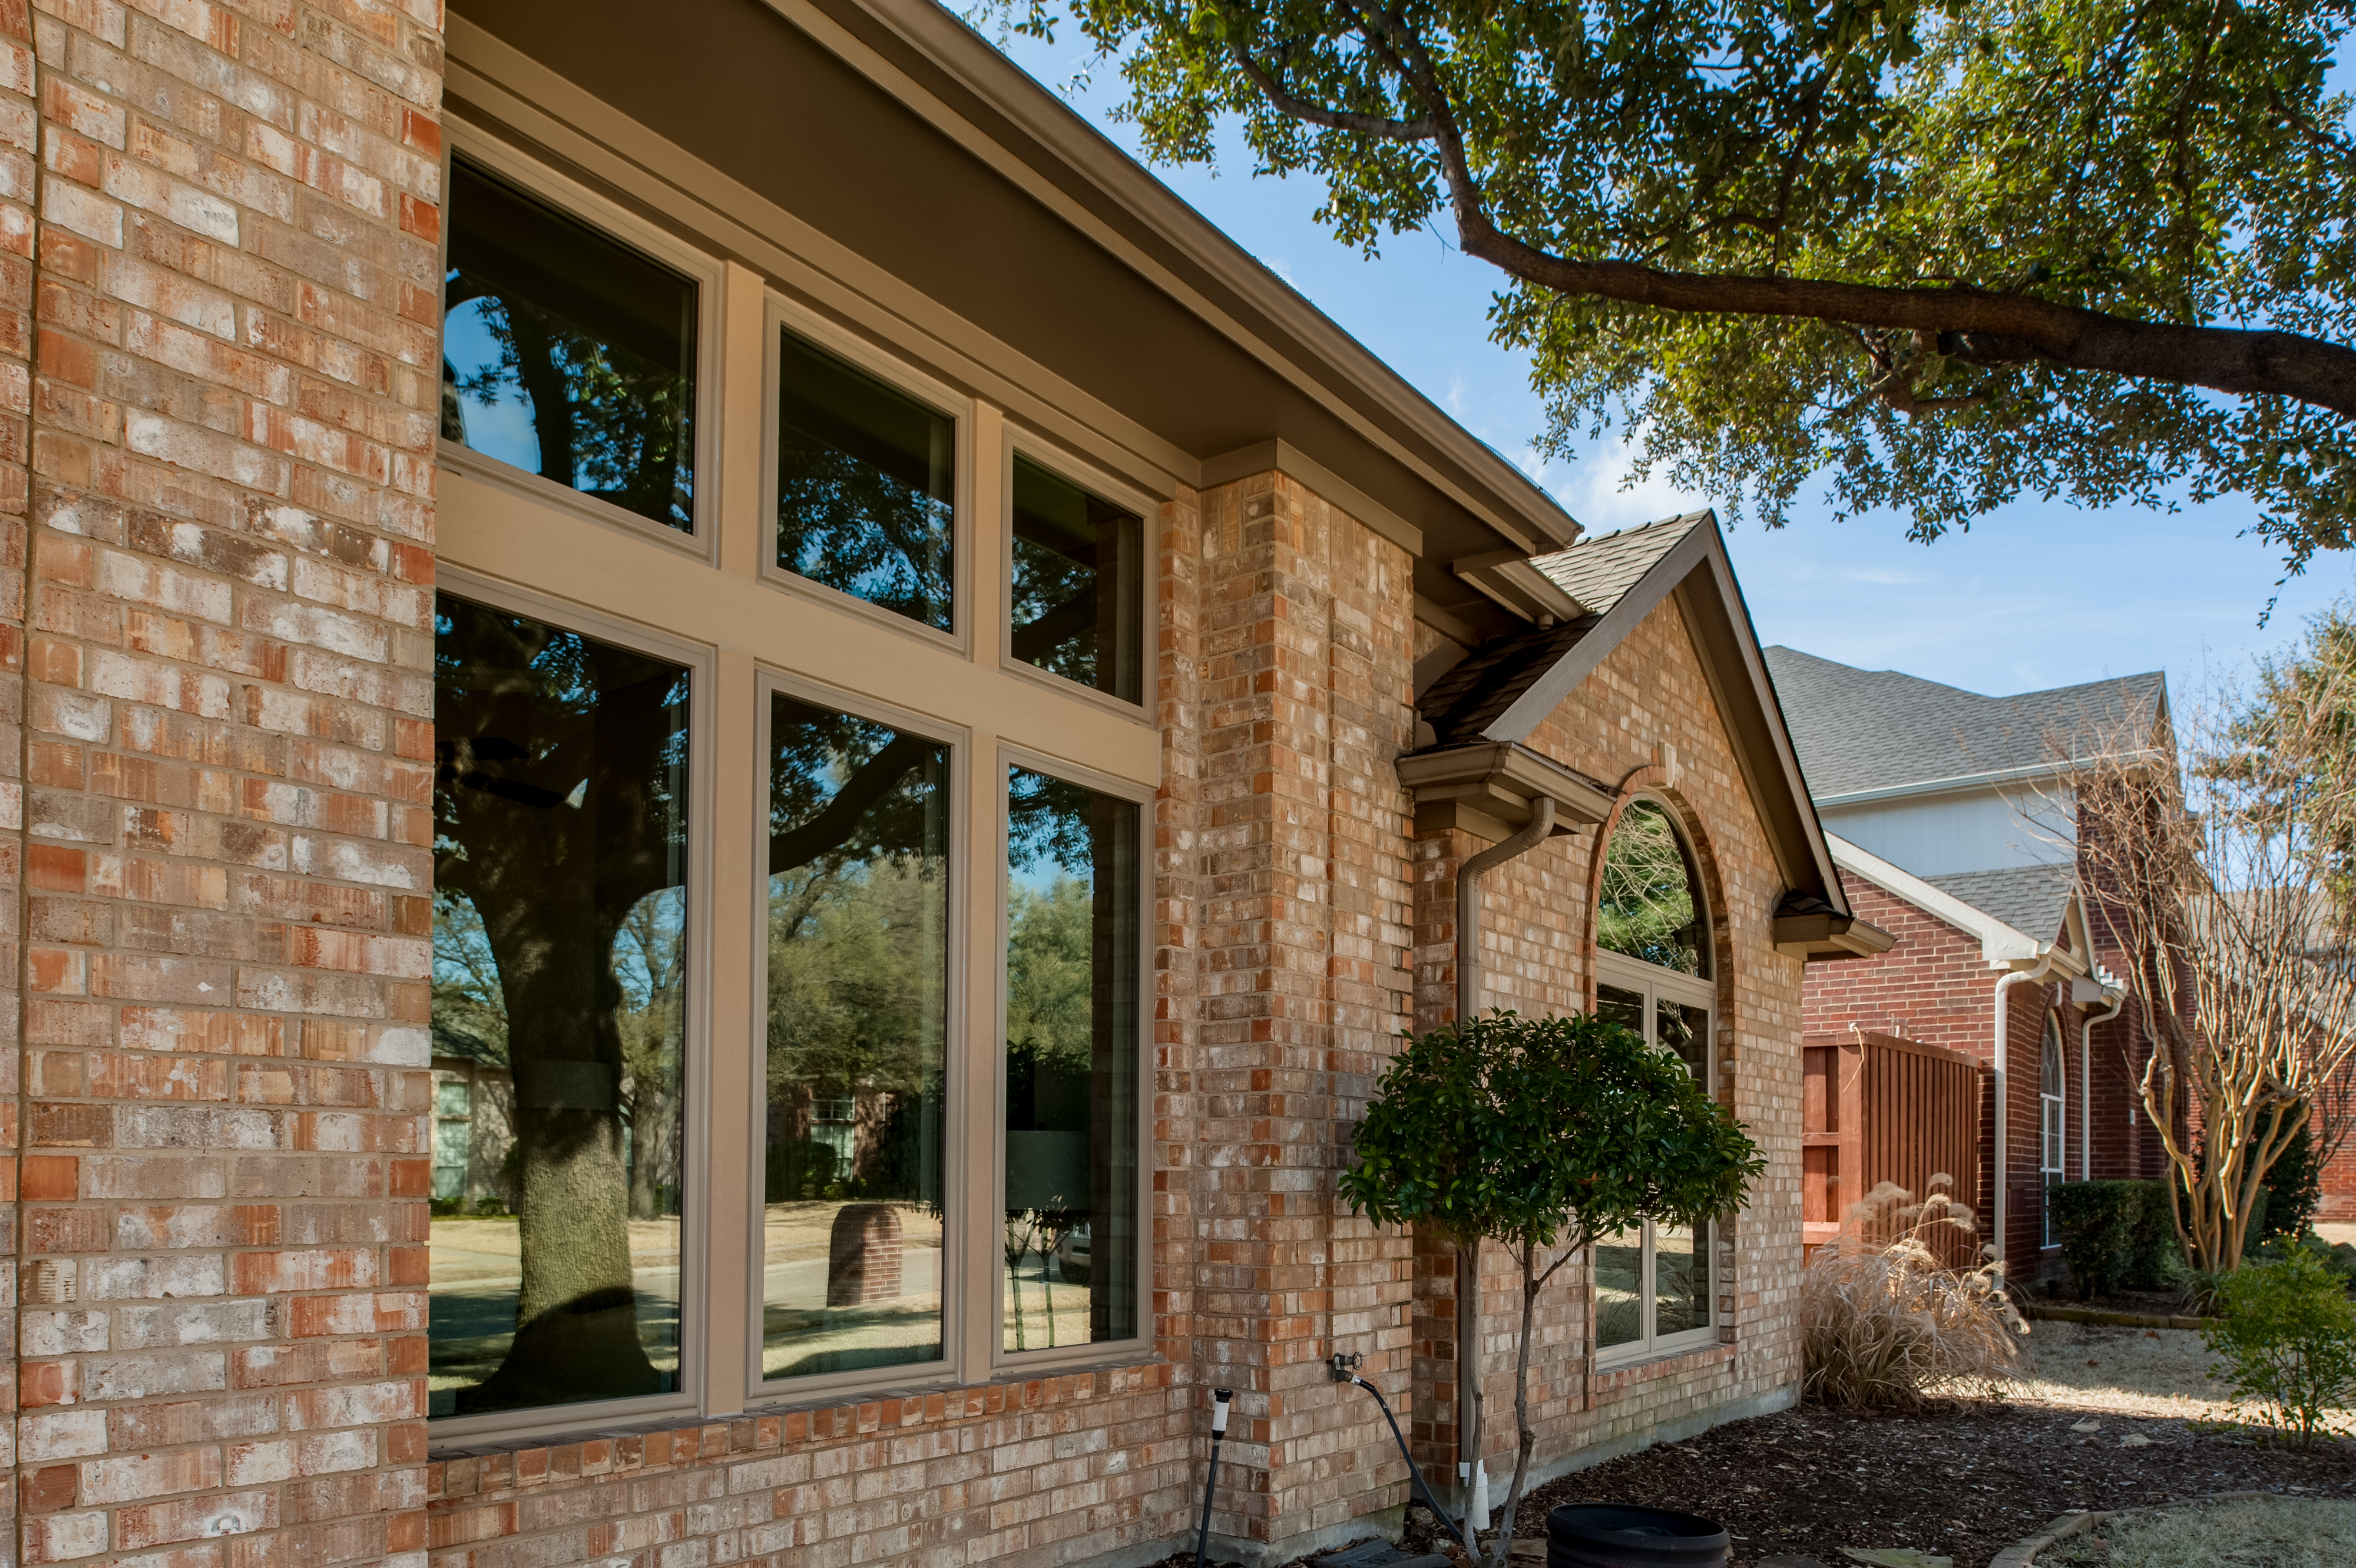 Example of vinyl windows from Brennan Enterprises. This image features Brennan Traditions vinyl casement windows.